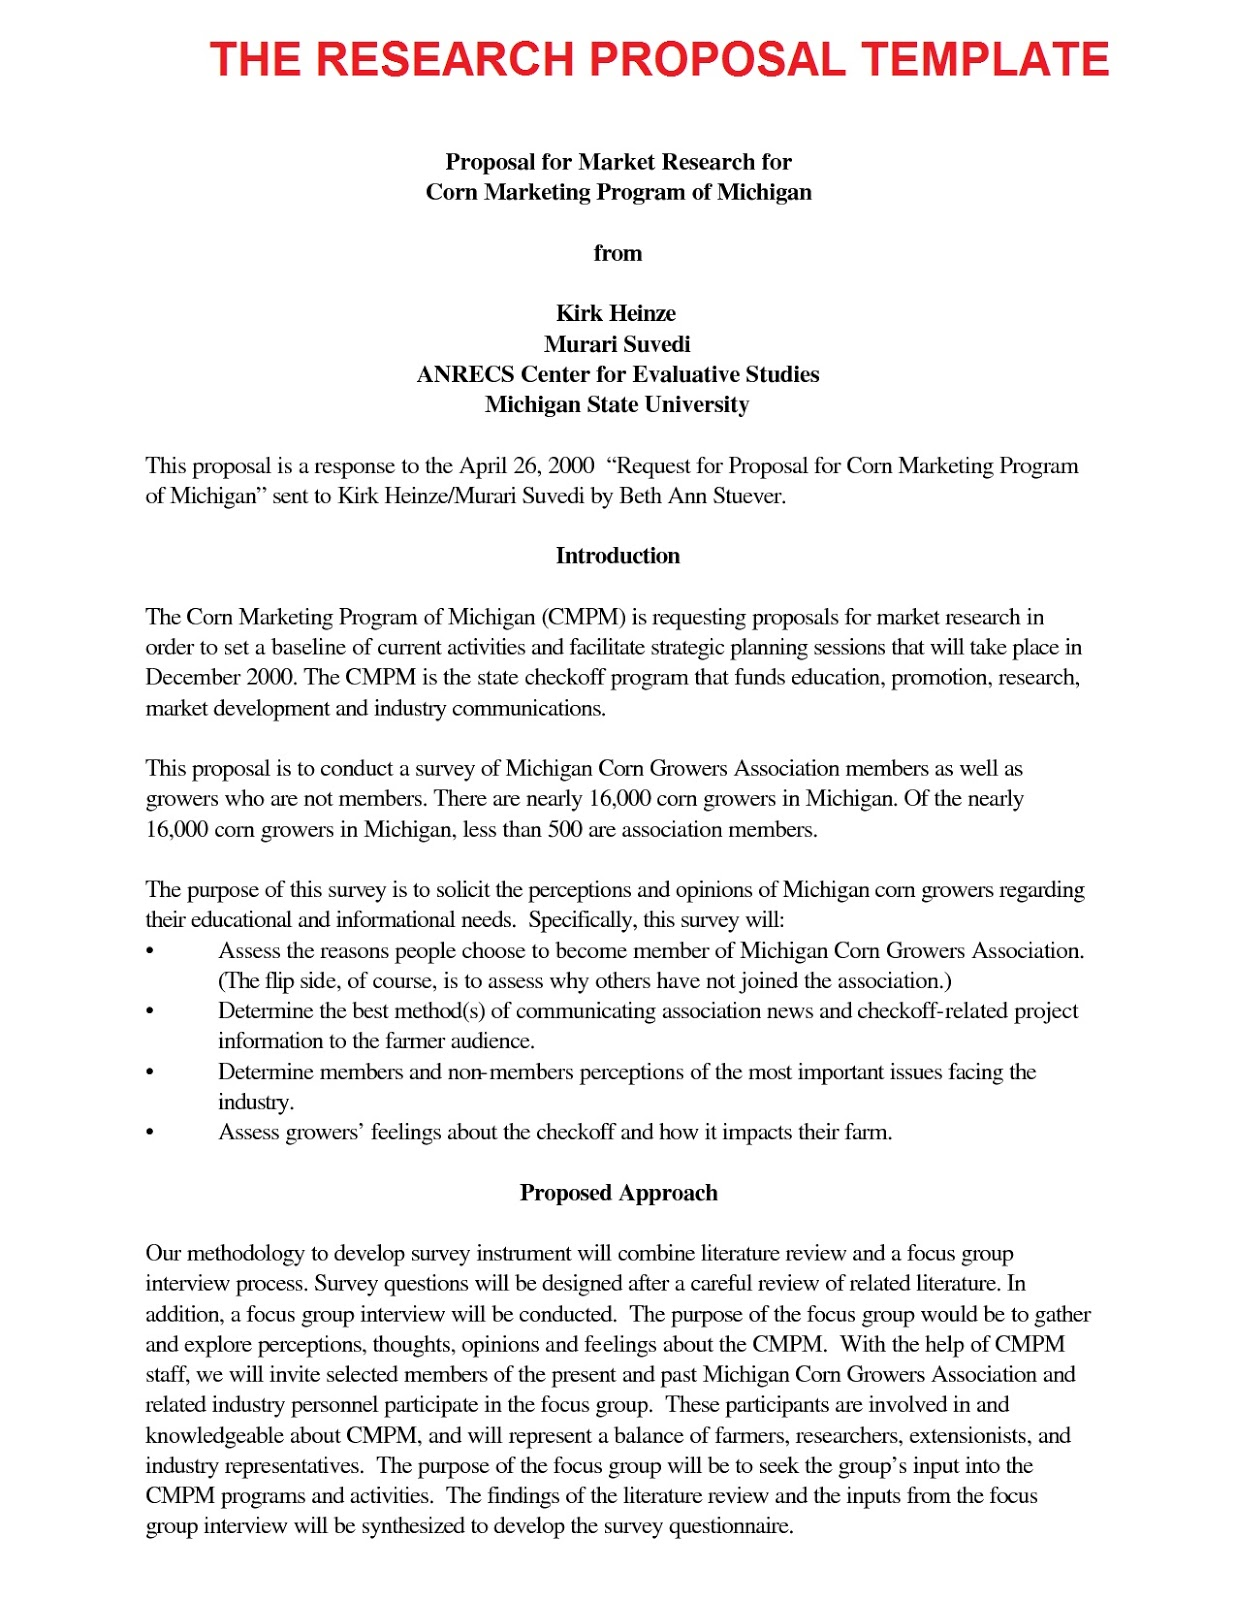 write thesis proposal introduction